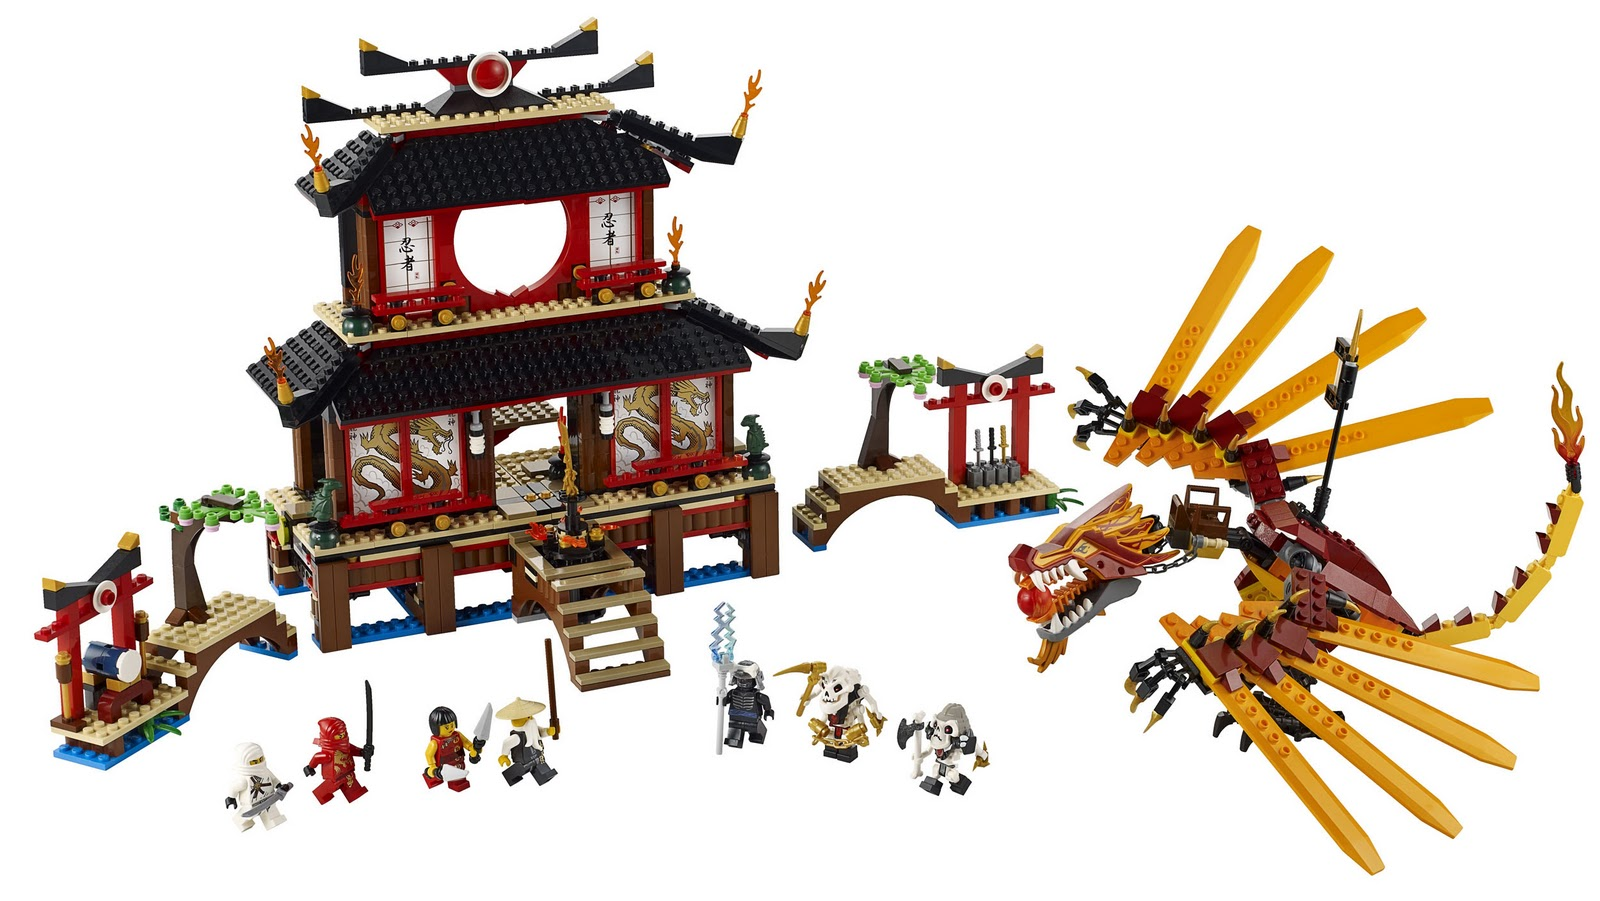 Double brickmania lego ninjago 2011 summer sets - Lego ninjago logo ...